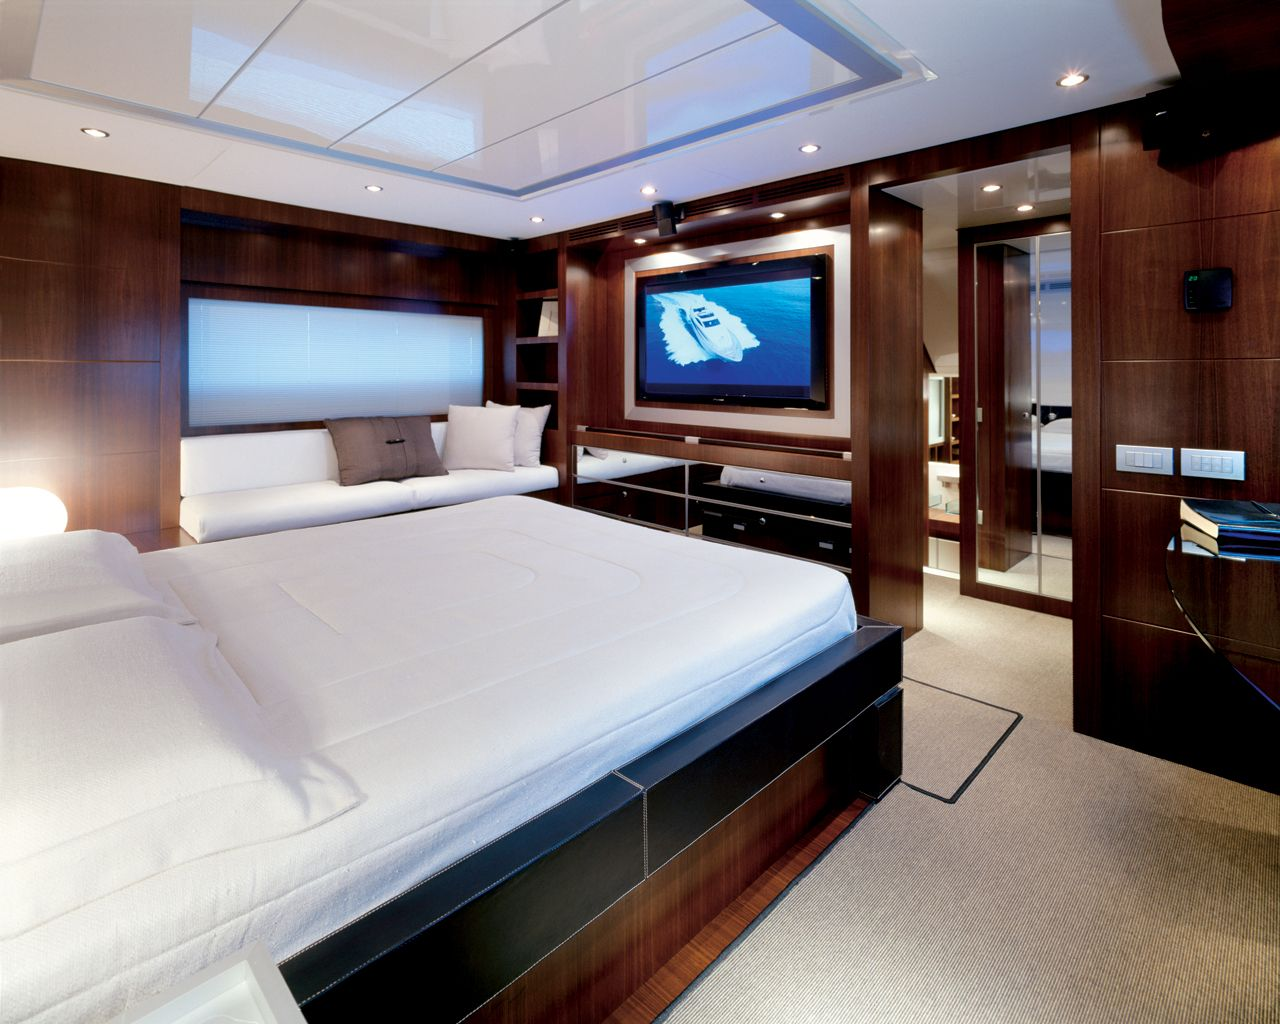 Boat Interior Design Ideas interior sketch Unique Yacht Interiors Pictures Yacht Bedroom Interior Design Yacht Bedroom Interior Design